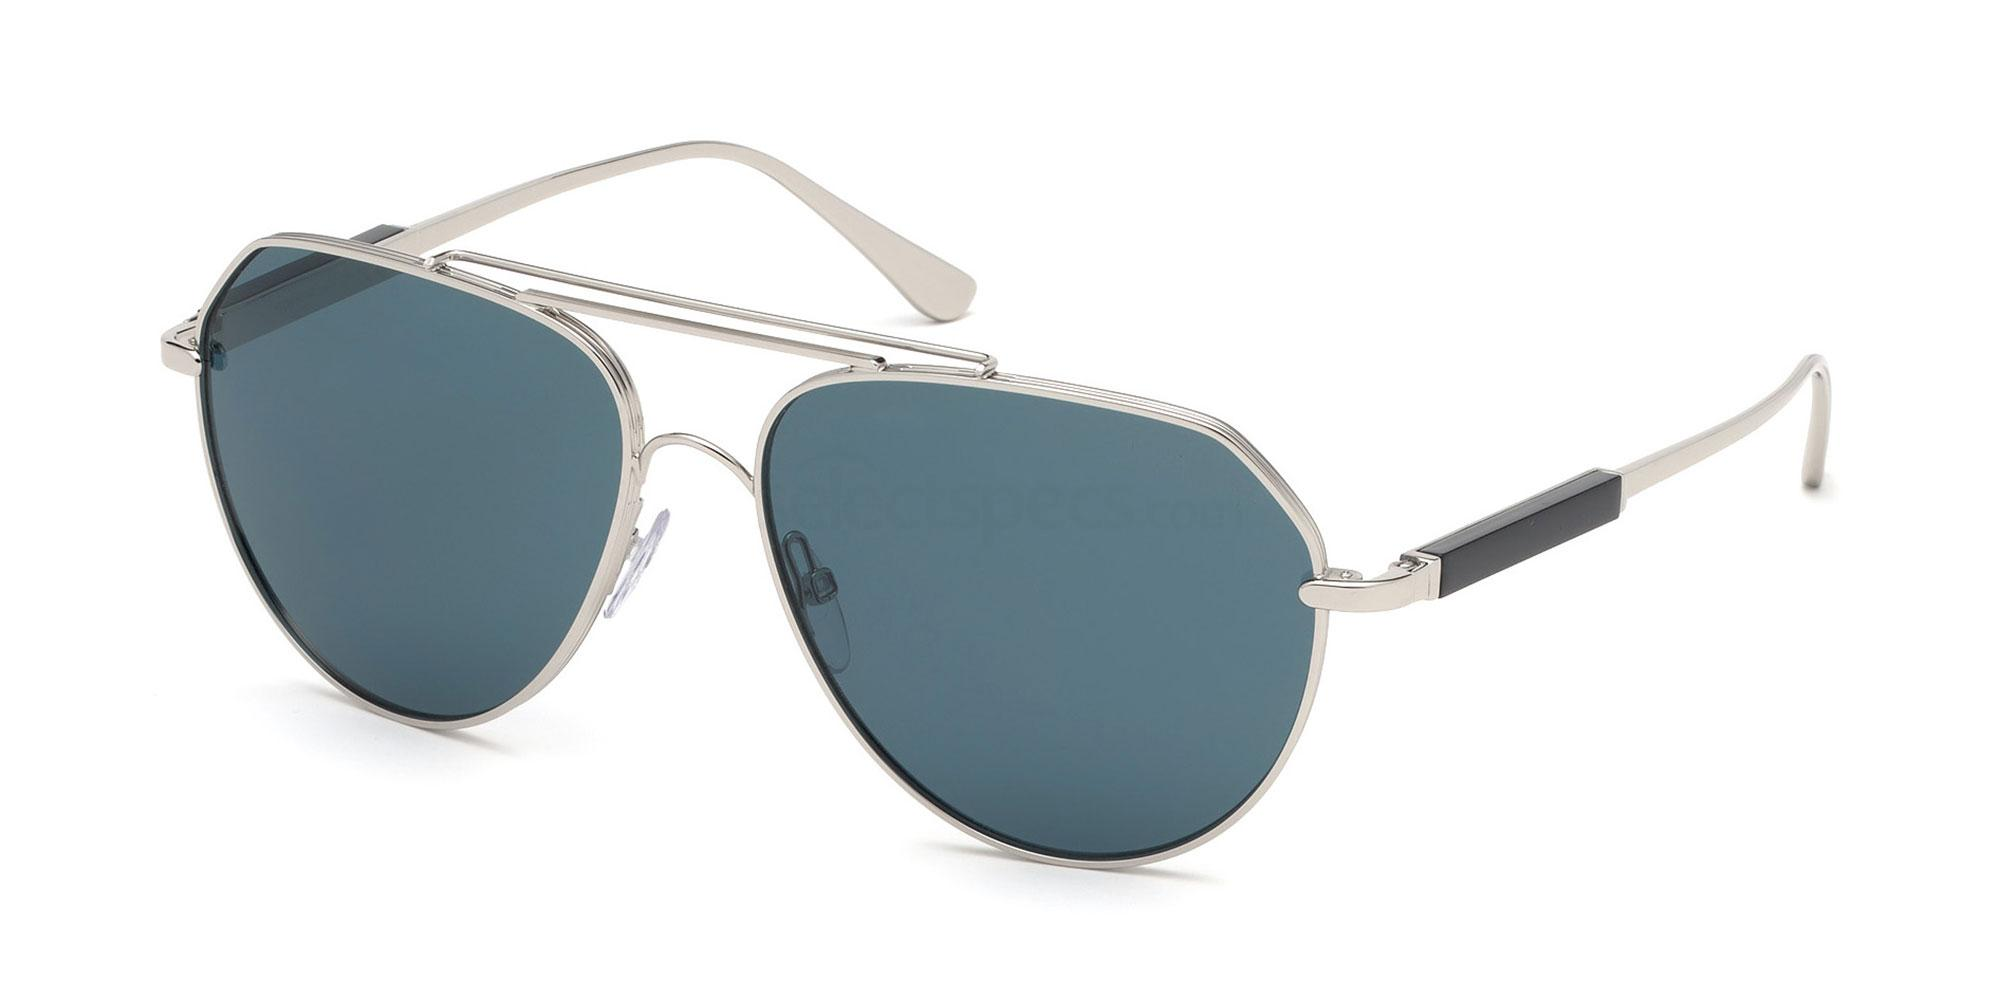 16V FT0670 Sunglasses, Tom Ford